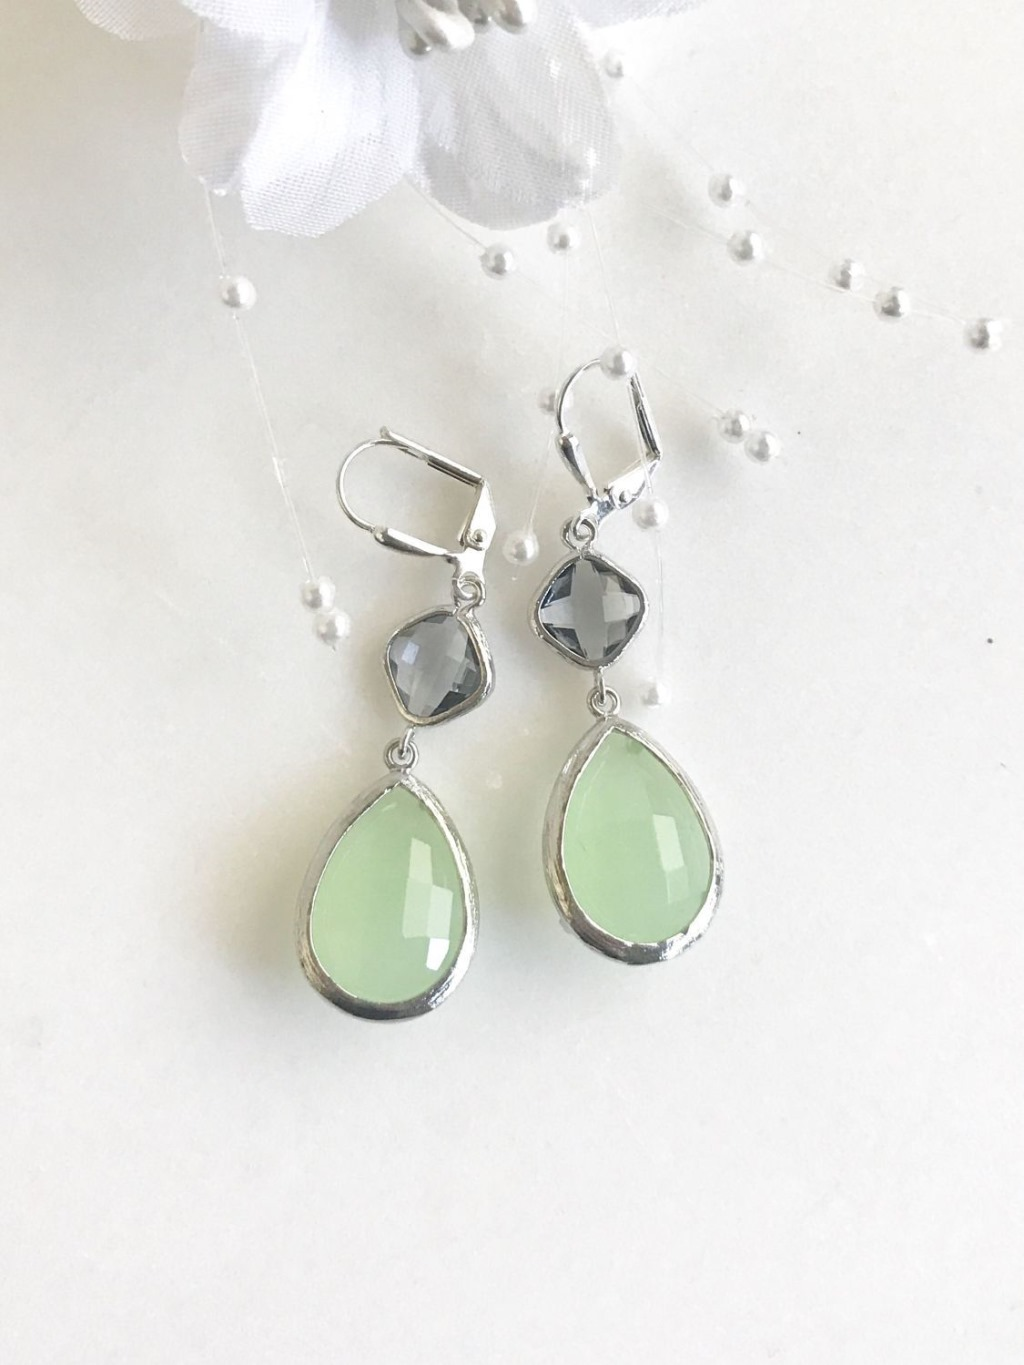 Mint and Charcoal Gray Bridesmaids Earrings in Silver. Mint and Grey Bridesmaids Dangle Earrings. Drop Earrings. Jewelry Gift. Wedding